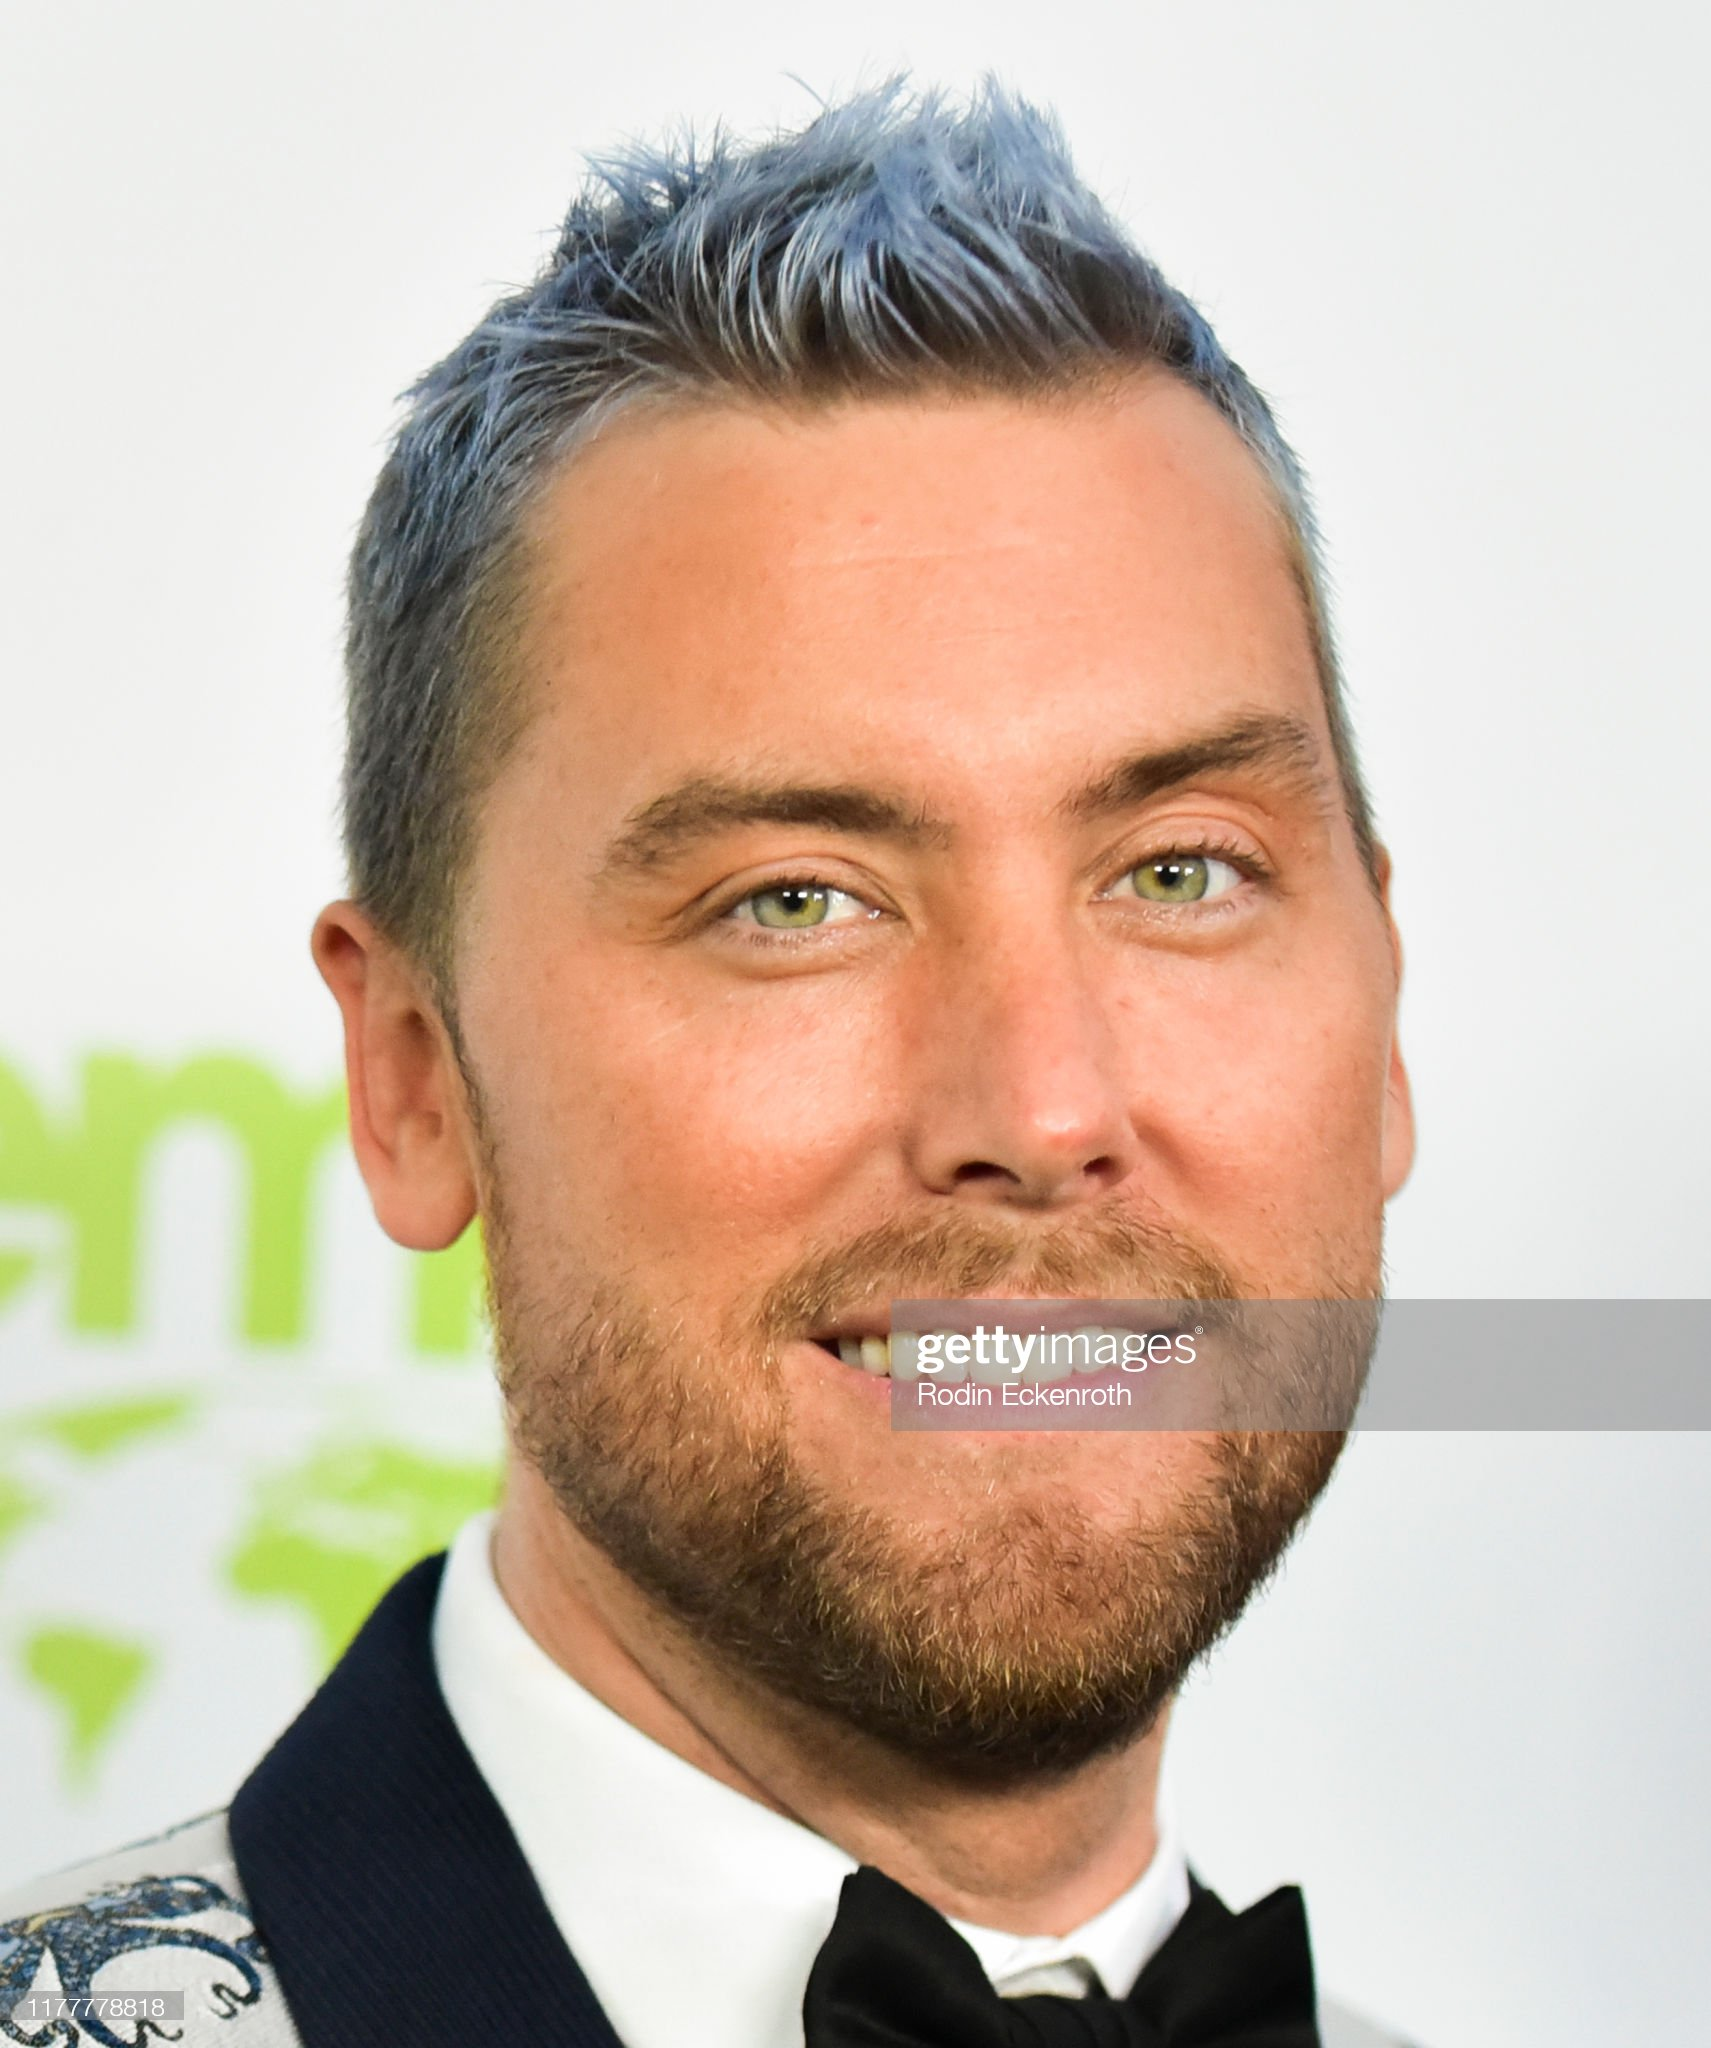 Ojos verdes - Famosas y famosos con los ojos de color VERDE Lance-bass-attends-the-2nd-annual-environmental-media-association-picture-id1177778818?s=2048x2048